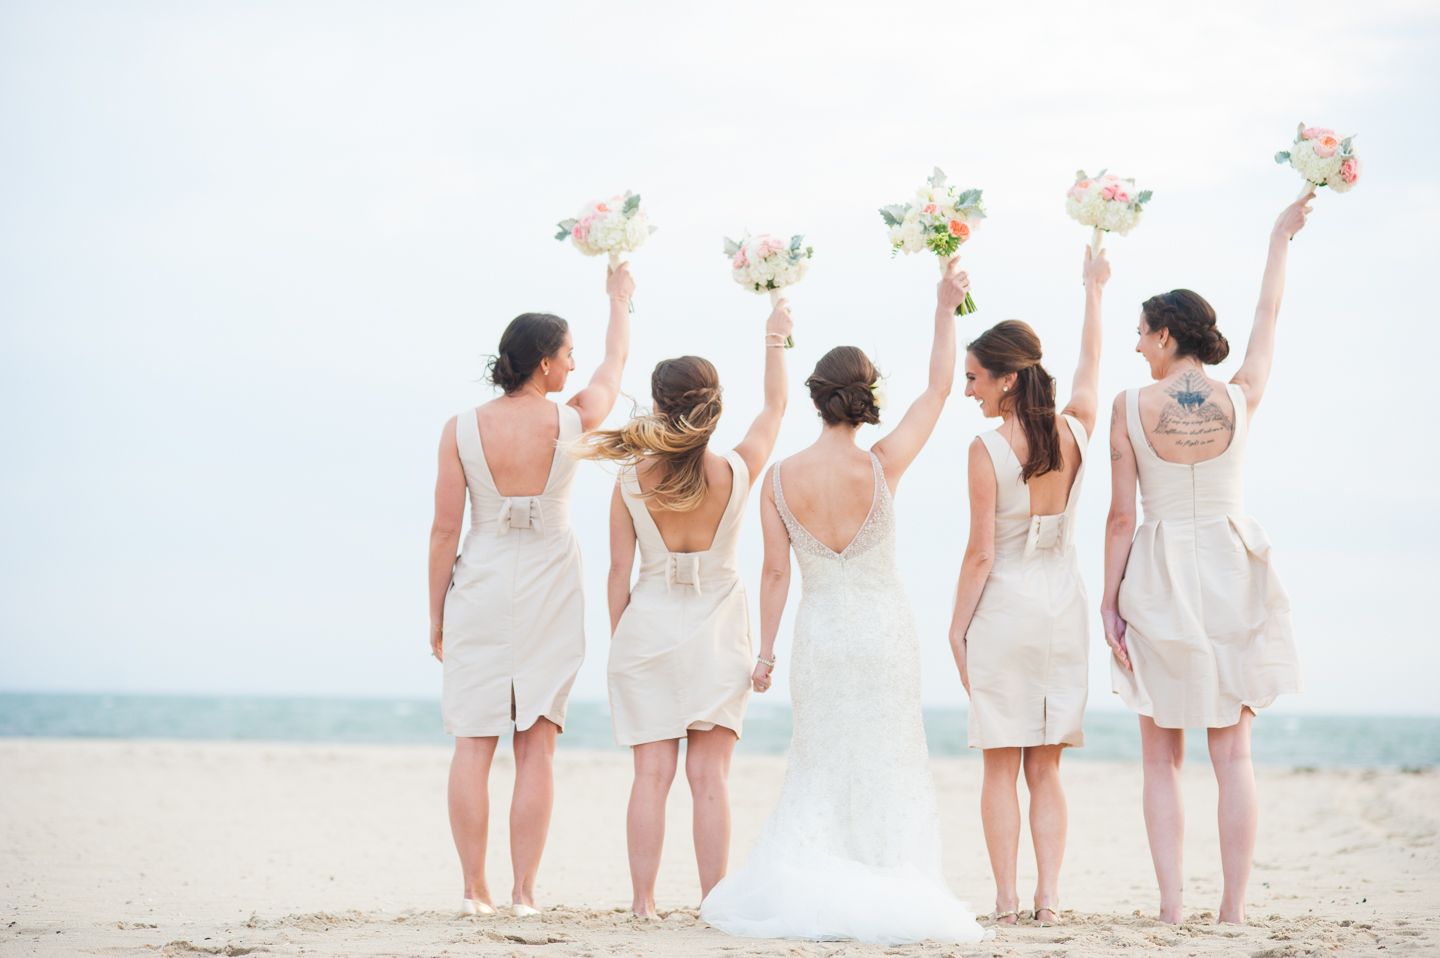 the ladies cheer and laugh at each other during wedding party pictures on the beach